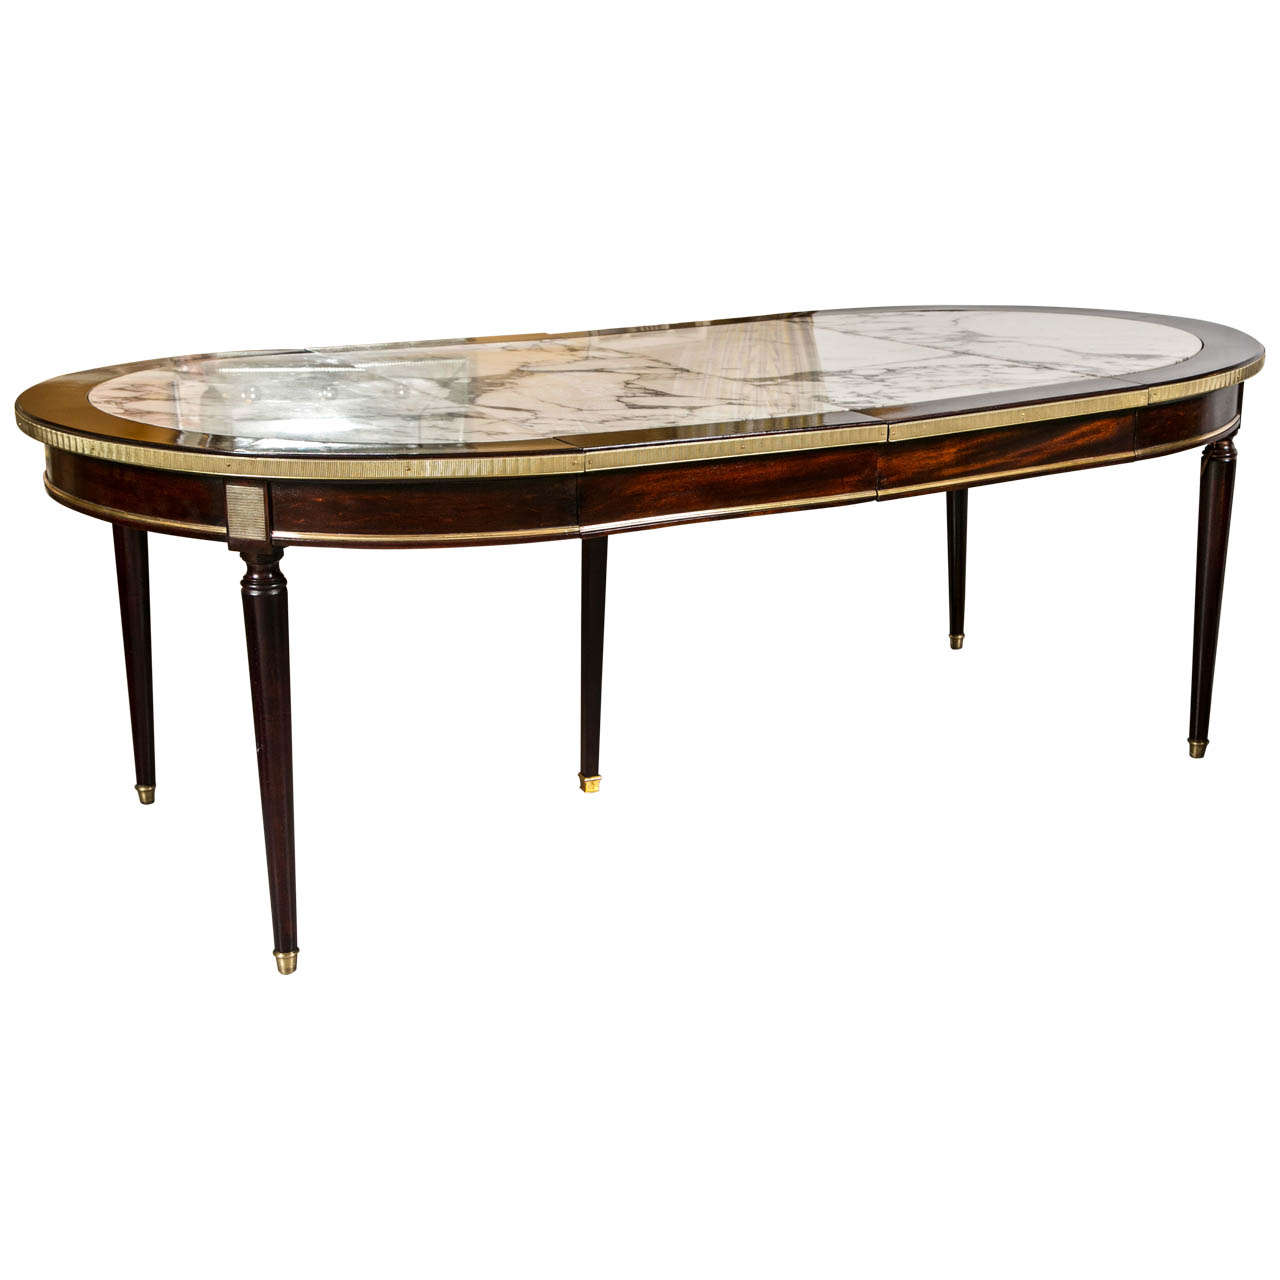 A Two Leaf Marble Top Dining Table By Maison Jansen At 1stdibs